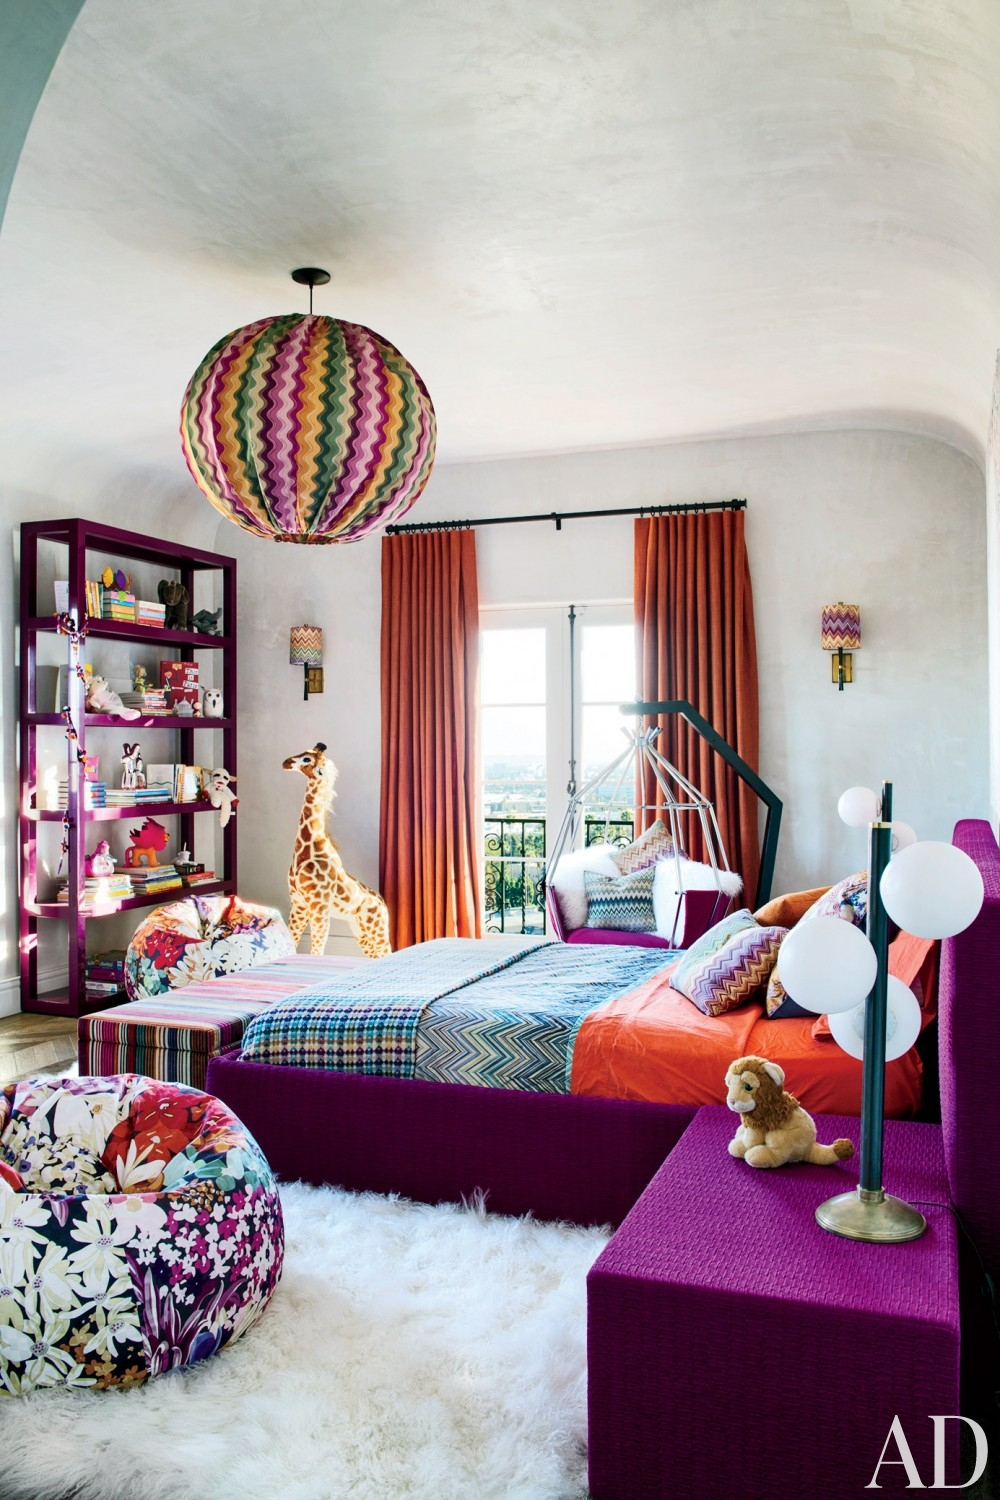 bedroom fluffy sheep rug purple velvet bed chevron bedding kids room better decorating bible blog ideas interiors orange curtains purple bookshelf beanbag floral chair